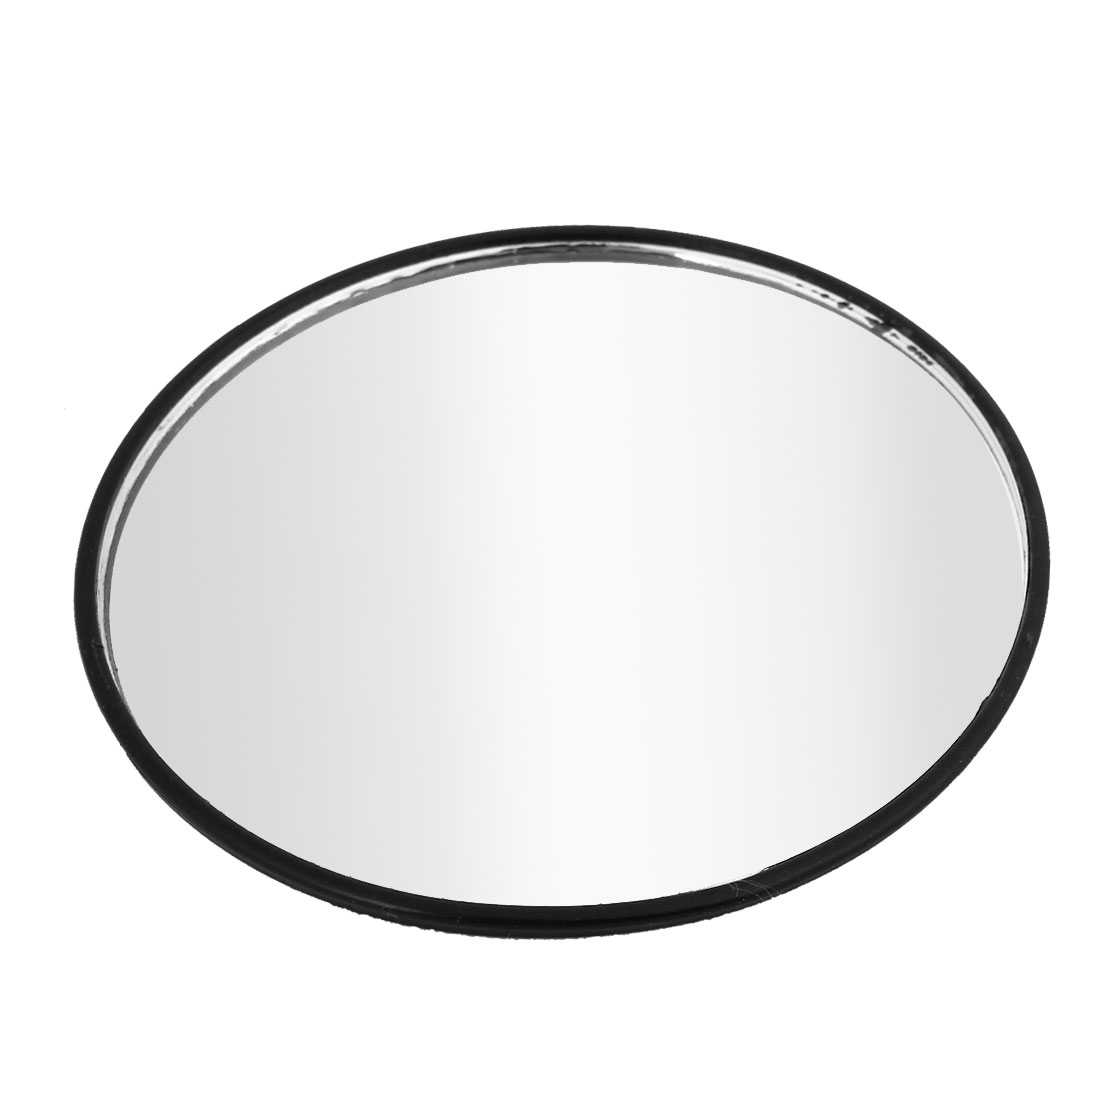 95mm Dia Black Stick-on Round Shape Convex Rearview Blind Spot Mirror